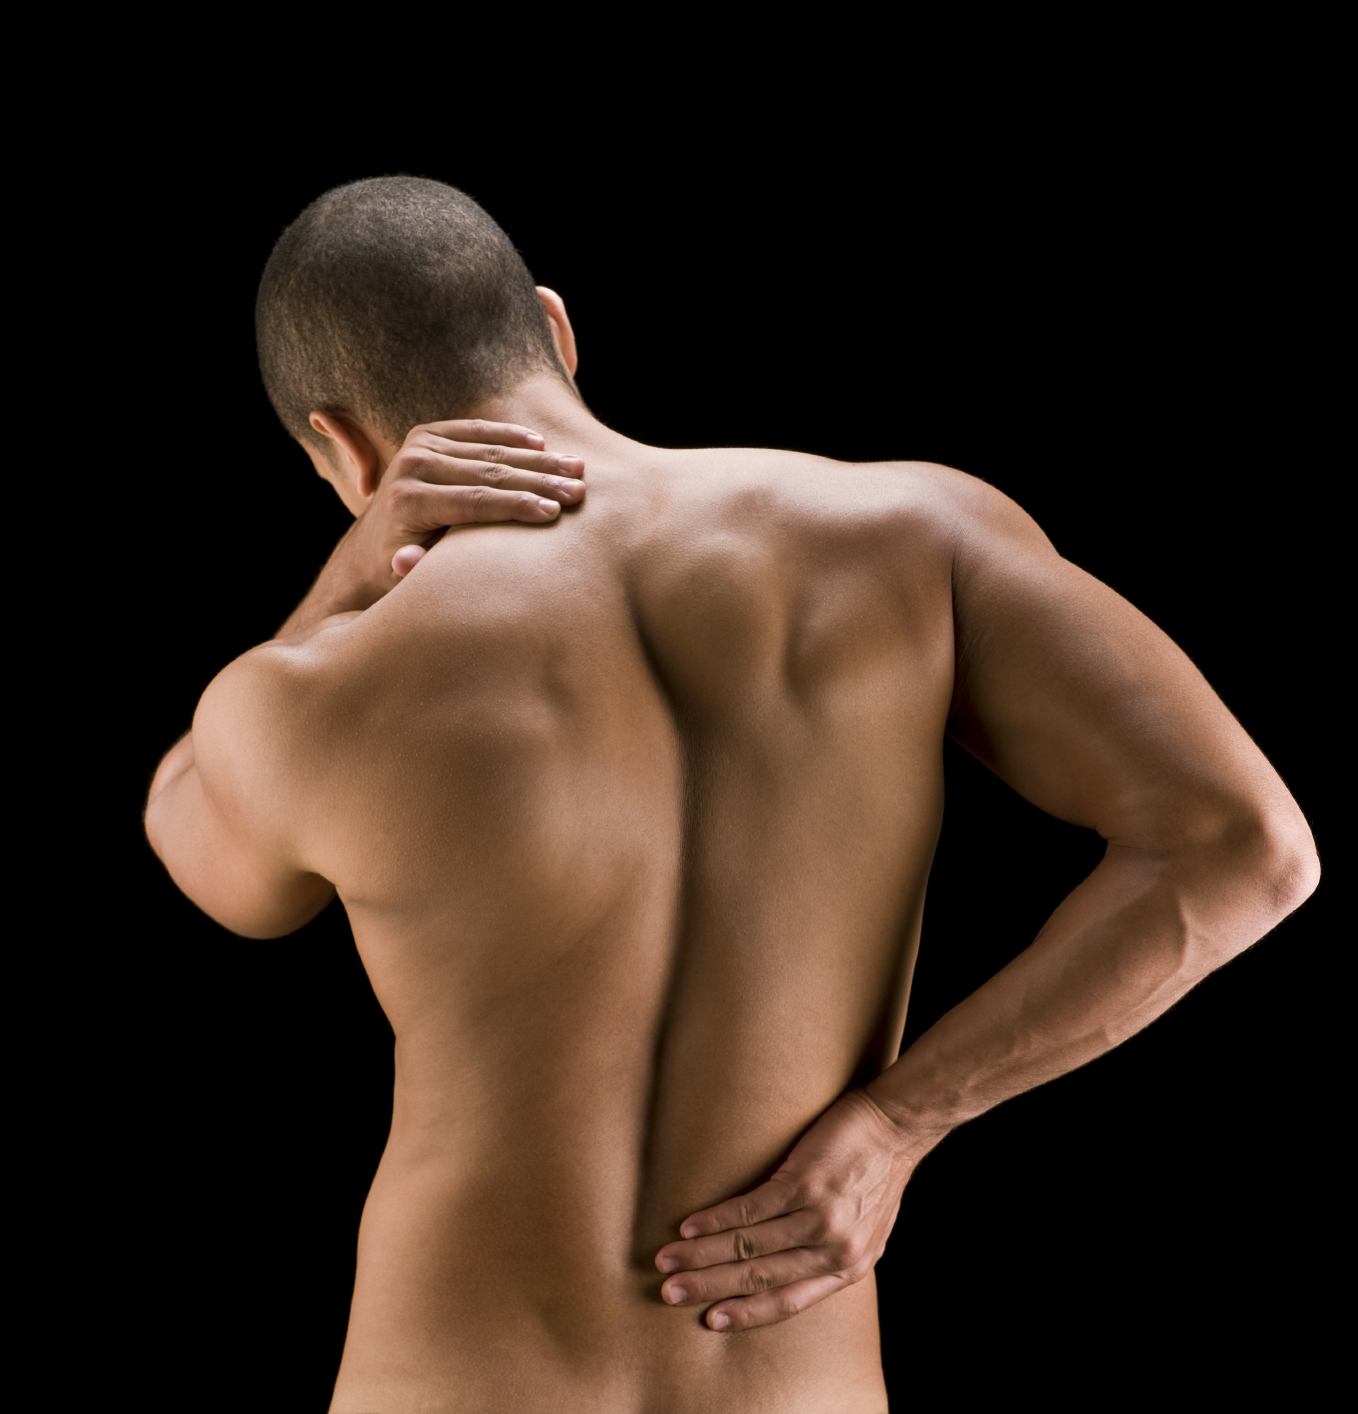 How To Get Rid Of Body Pain Naturally